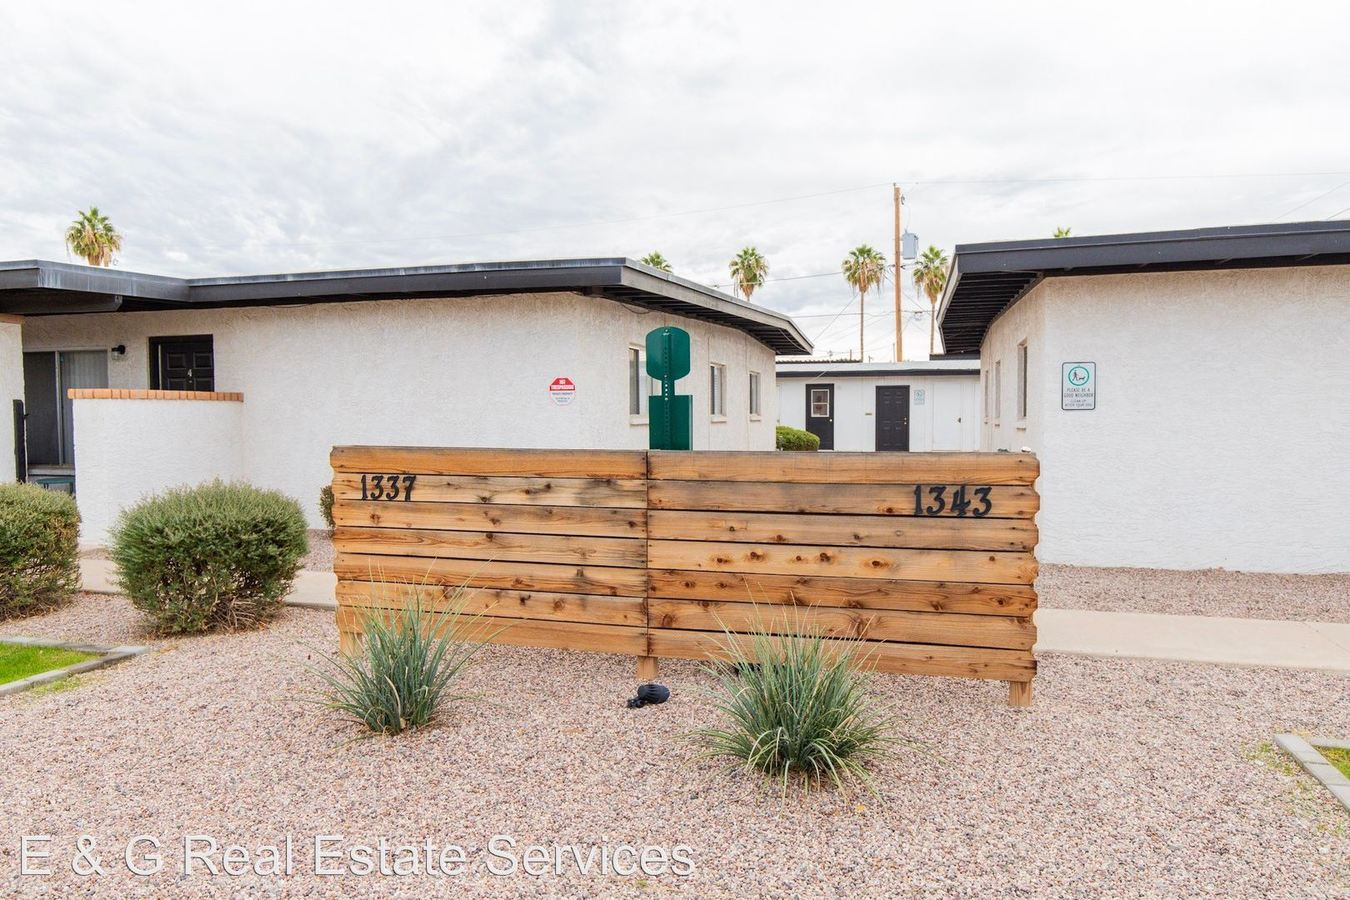 2 Bedrooms 1 Bathroom Apartment for rent at 1337 W 3rd St in Tempe, AZ